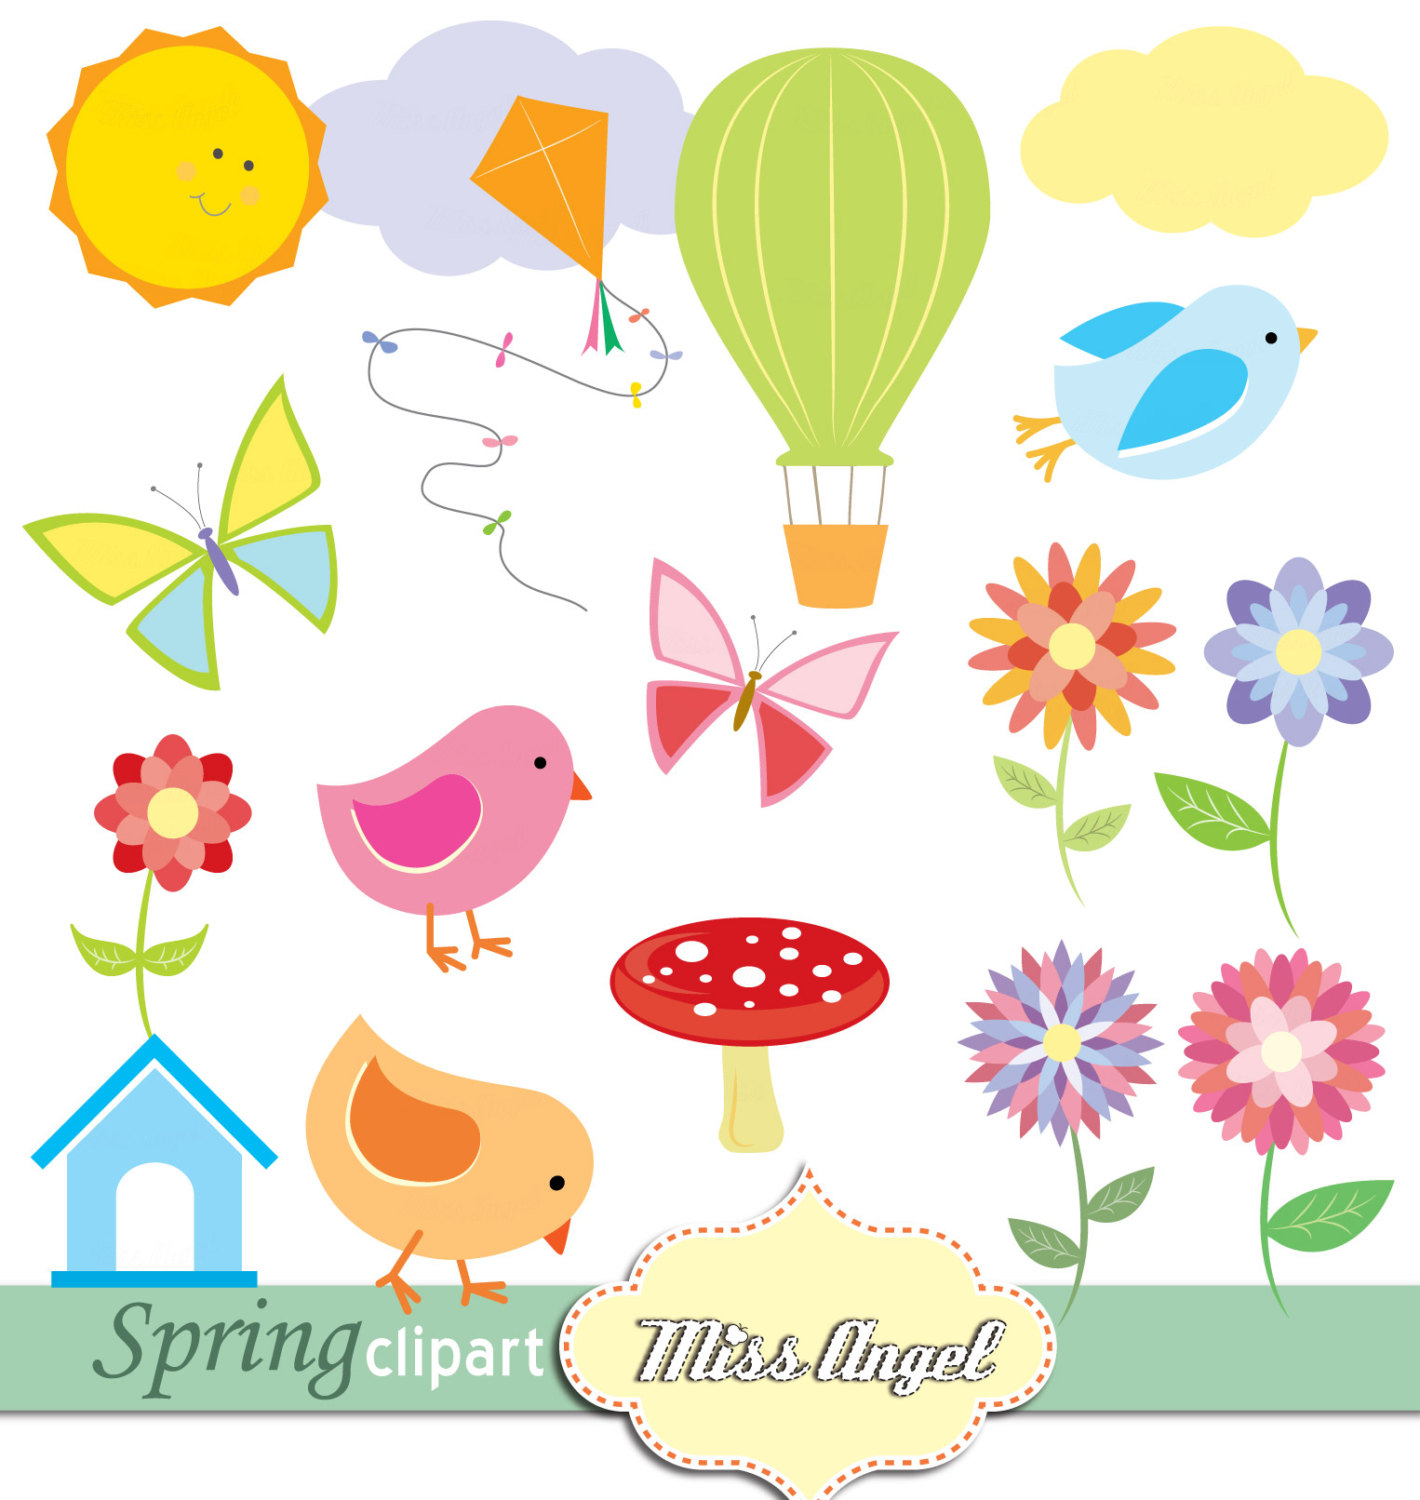 Glitch clipart cute spring Spring butterflies BORDERS PAGE birds